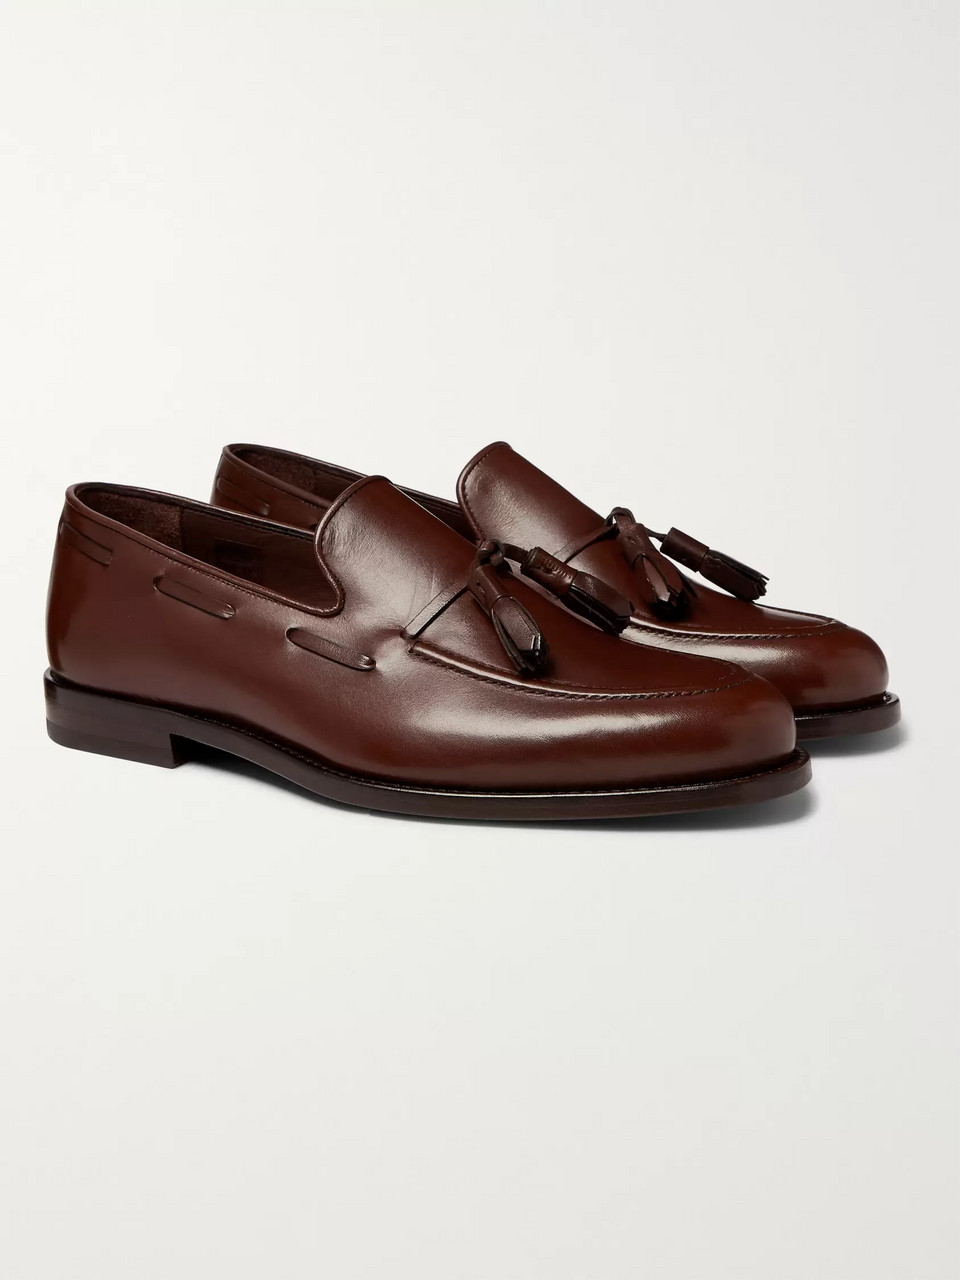 9179662995b Paul Smith Larry Leather Tasselled Loafers